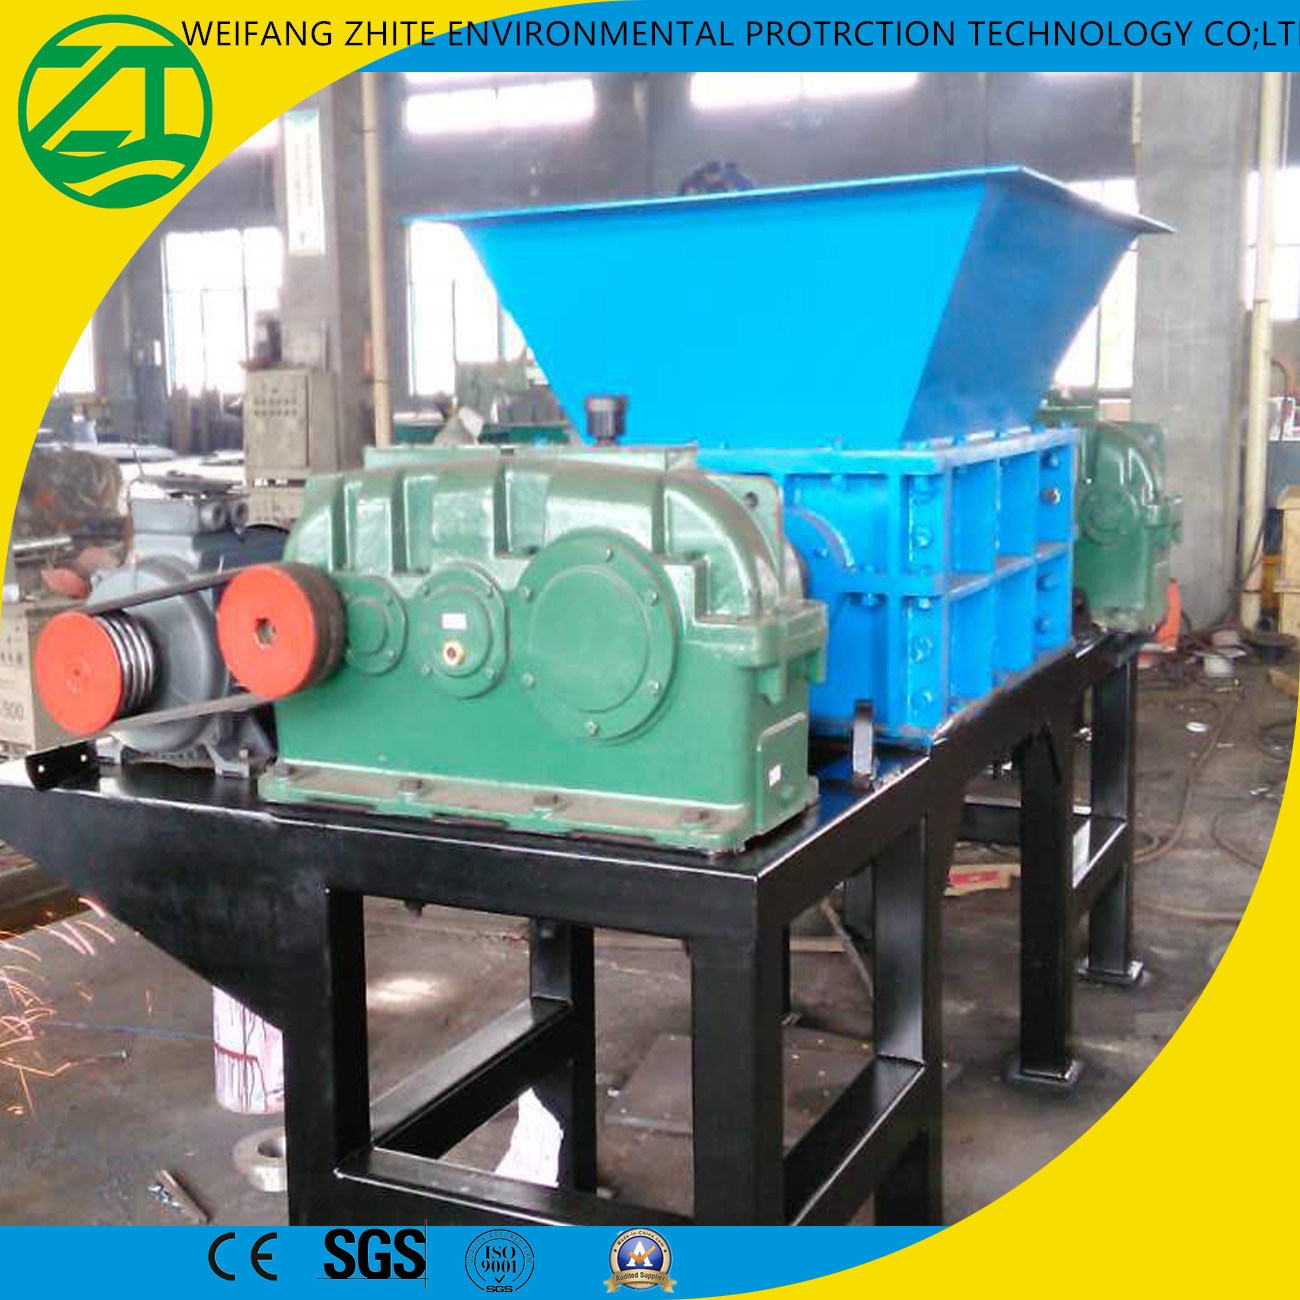 China Biaxial Living Garbage/Waste Plastic Recycling/Foam/Wood/Tire ...